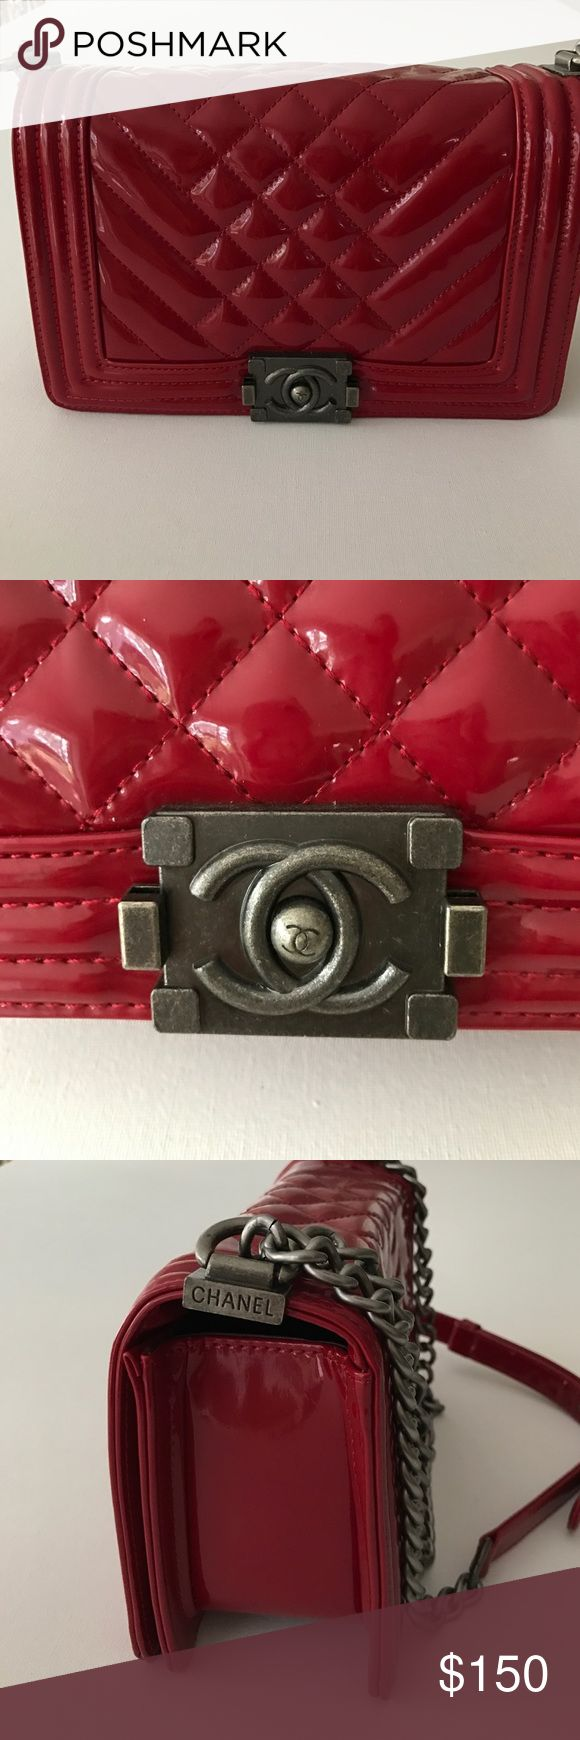 Chanel handbag 💥Chanel Purse. Excellent condition. Mirror Replica. No dust bag or box. 💥Firm price. Can be used as cross body or shoulder bag. I am moving out west & editing my collection. Serious offers only no trades. Please see my closet stats for my fast shipping and high credentials. CHANEL Bags Shoulder Bags